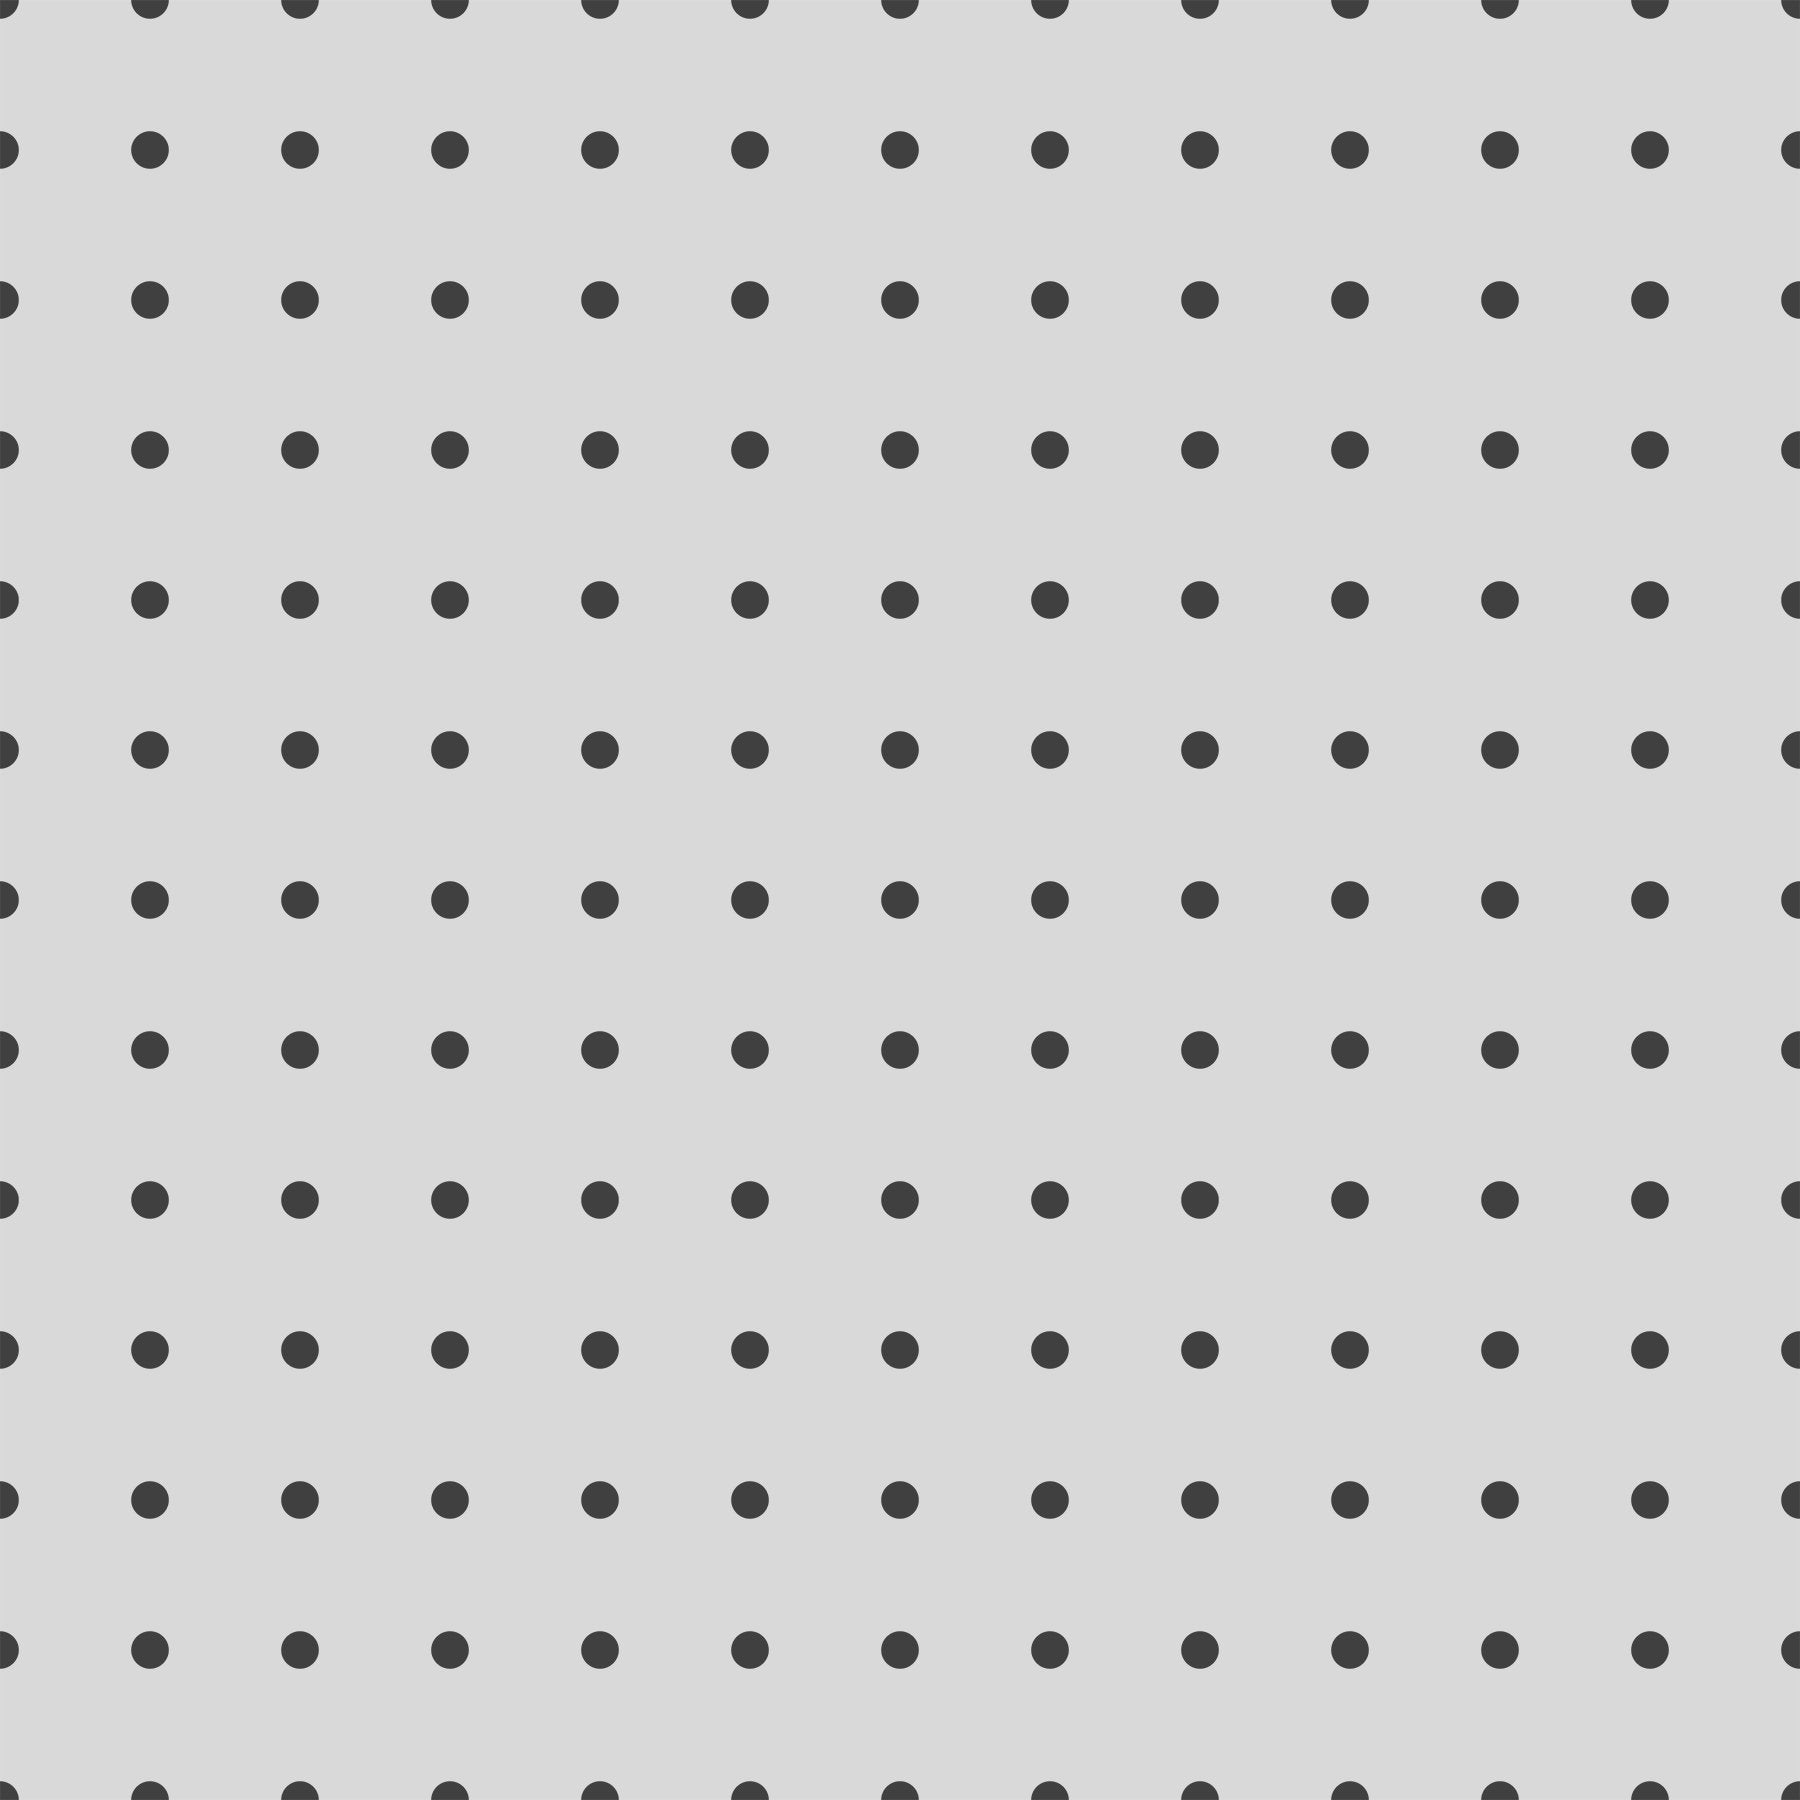 "Stitch & Sparkle Tool Box-Peg Board Grey 100% Cotton Fabric 44"" Wide, Quilt Crafts Cut by The Yard"